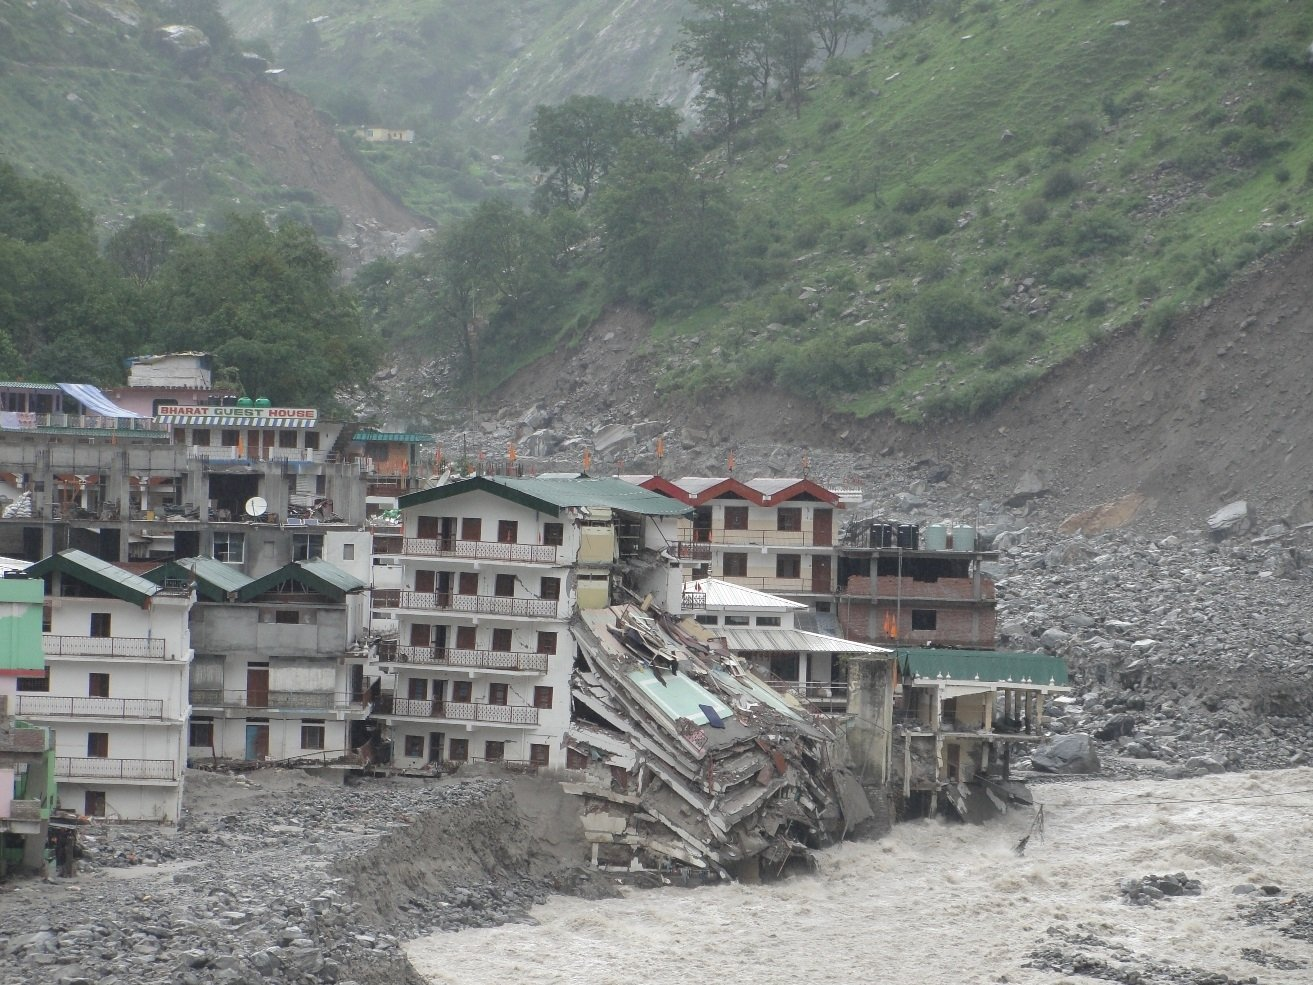 Uttarakhand floods 2013: What led to Kedarnath disaster